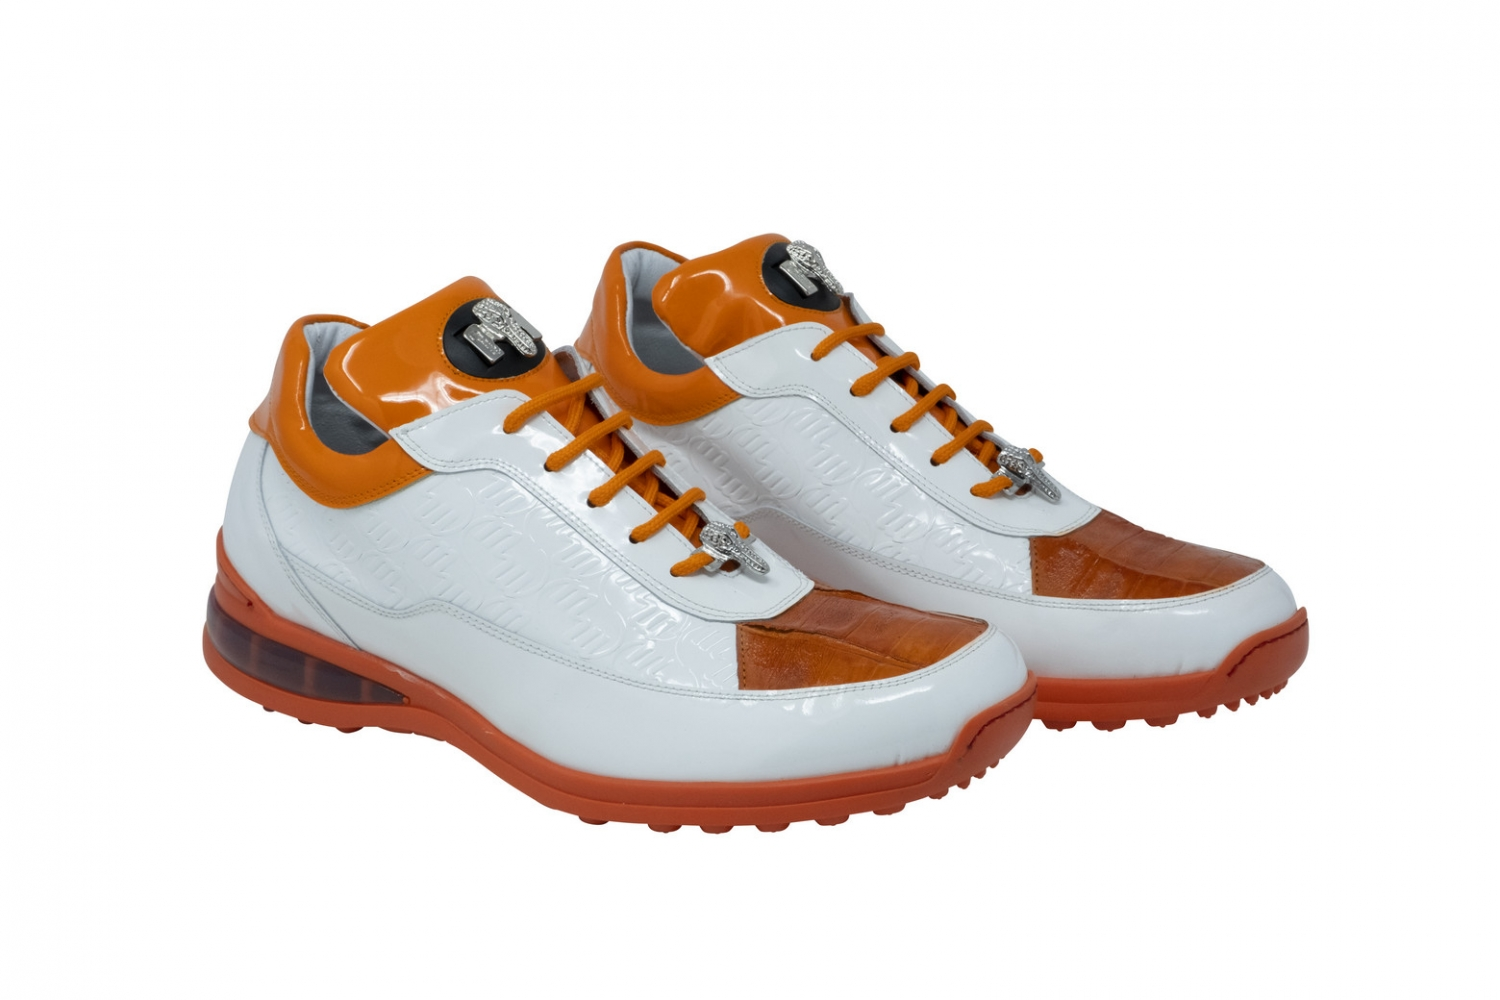 2020 Mauri Bubble Patent Leather Logo Sneaker White Orange 8900/2